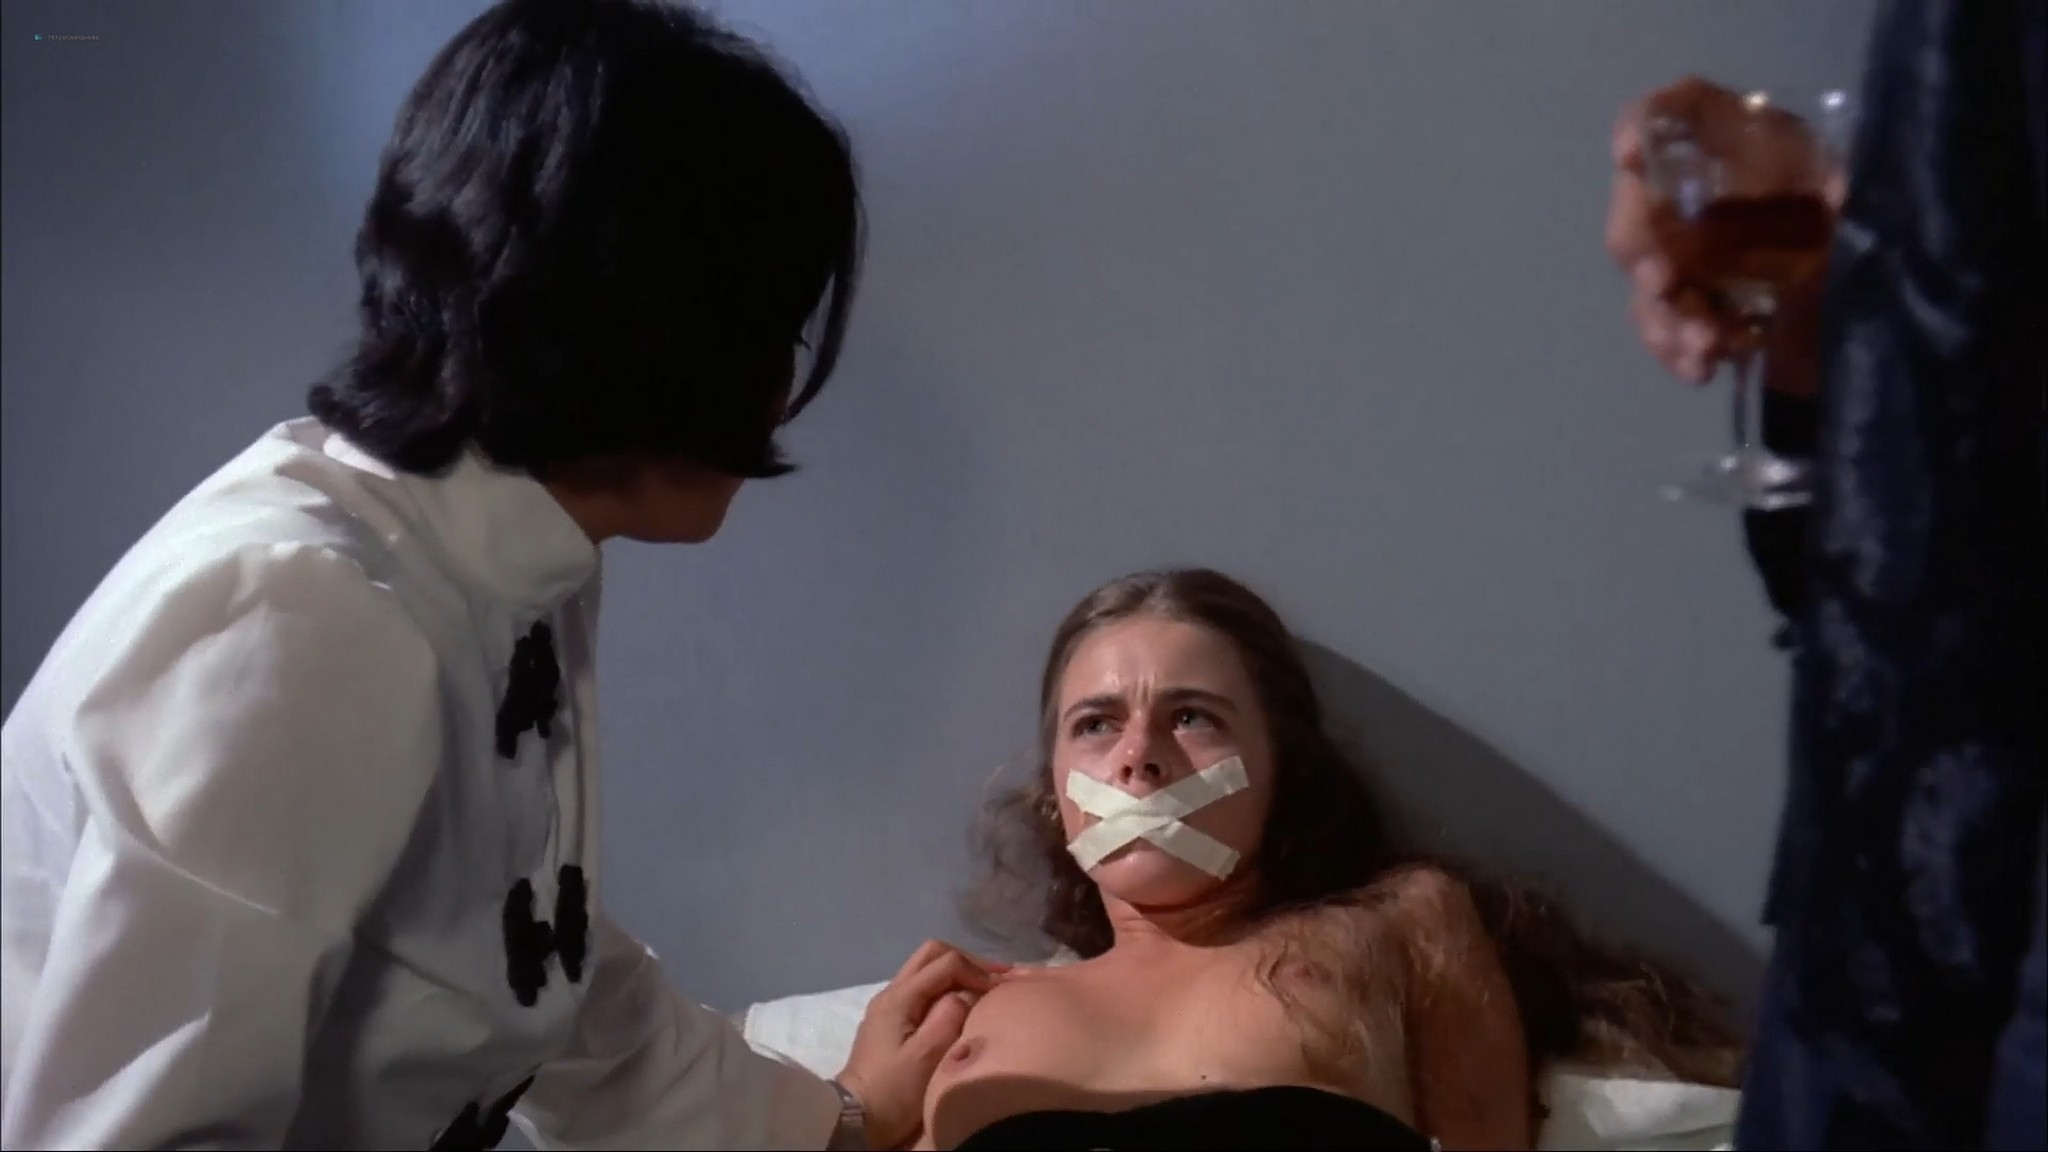 Lenore Kasdorf bude sex Pat Anderson Lyllah Torena and others all nude Fly Me 1973 1080p Web 7